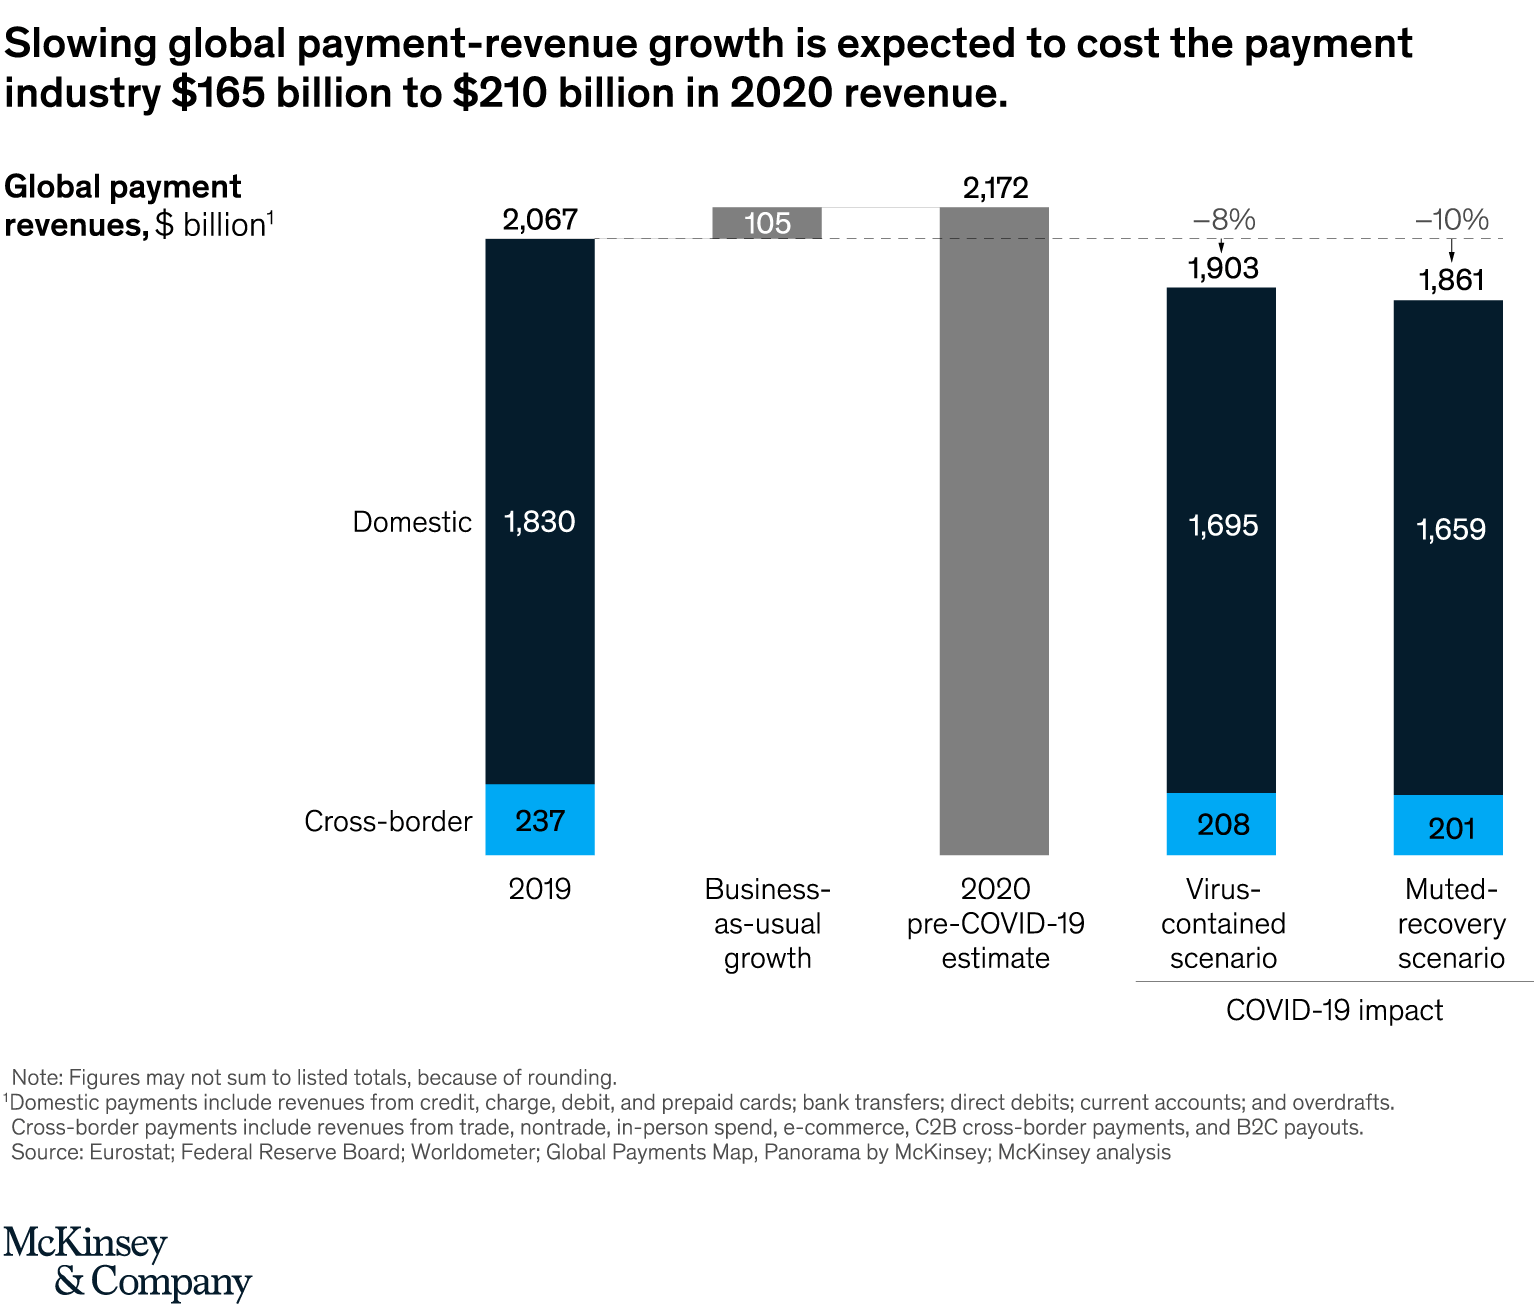 Slowing global payment: revenue growth is expected to cost the payment industry US$165 billion to US$210 billion in 2020 revenue. Source: McKinsey